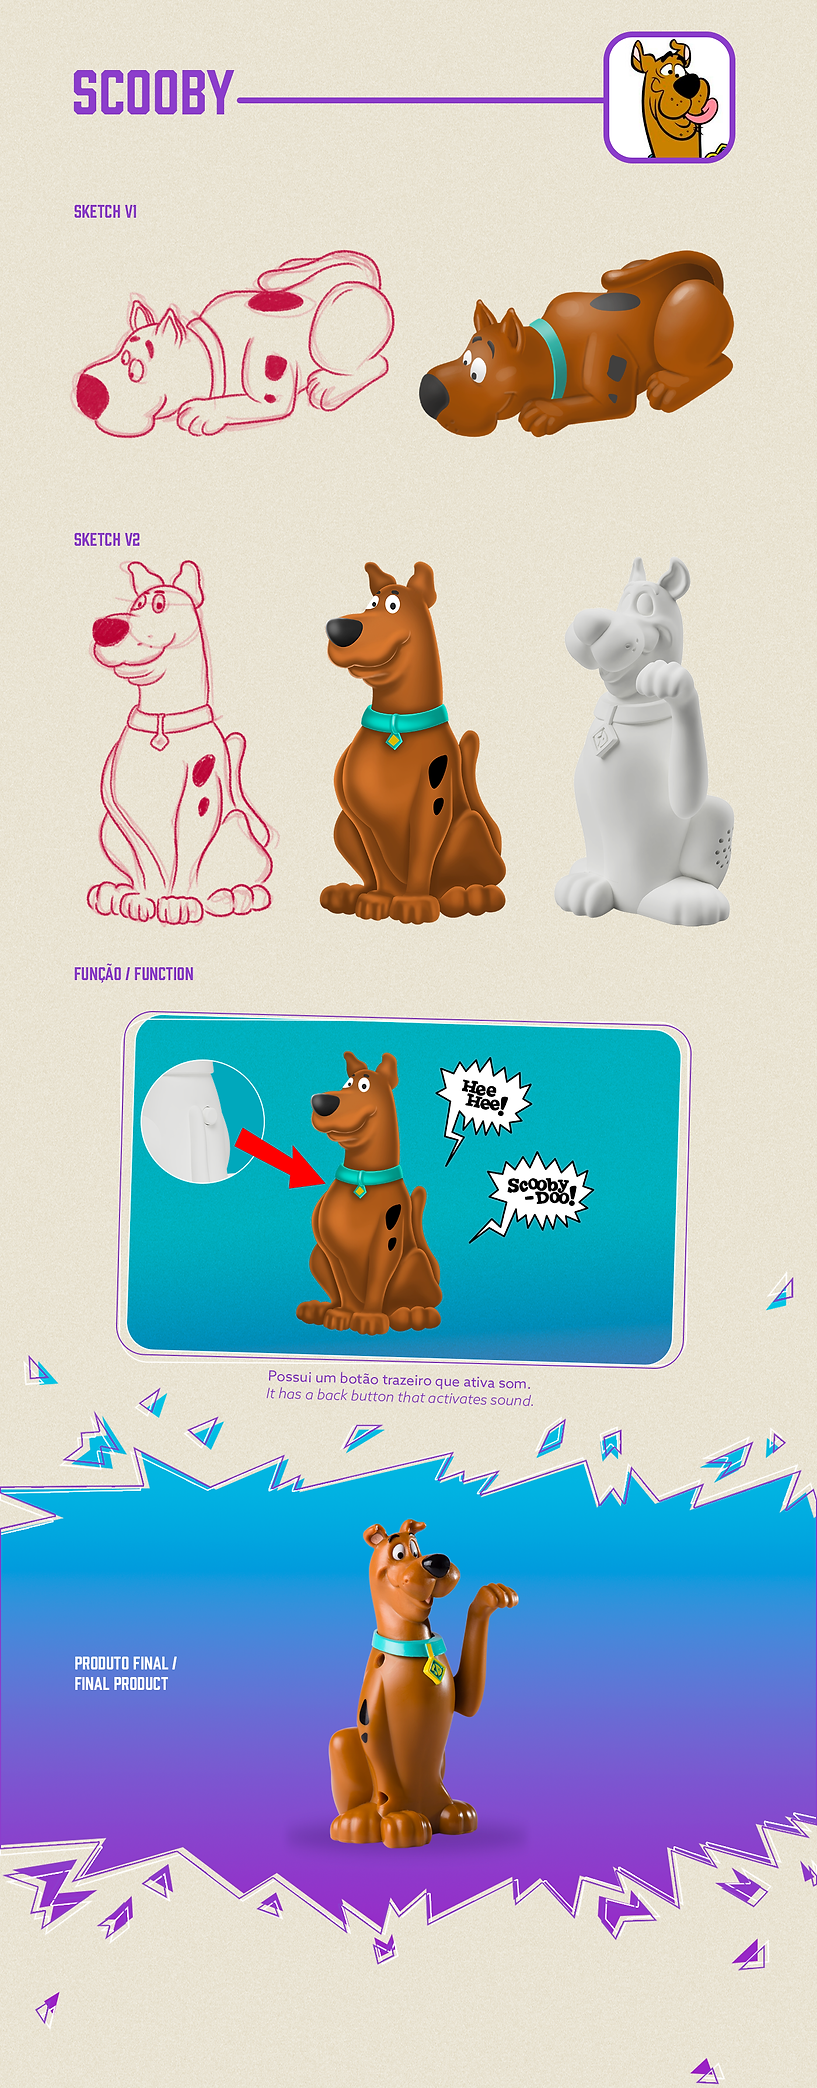 Behance---Scooby-Doo---Scooby.png